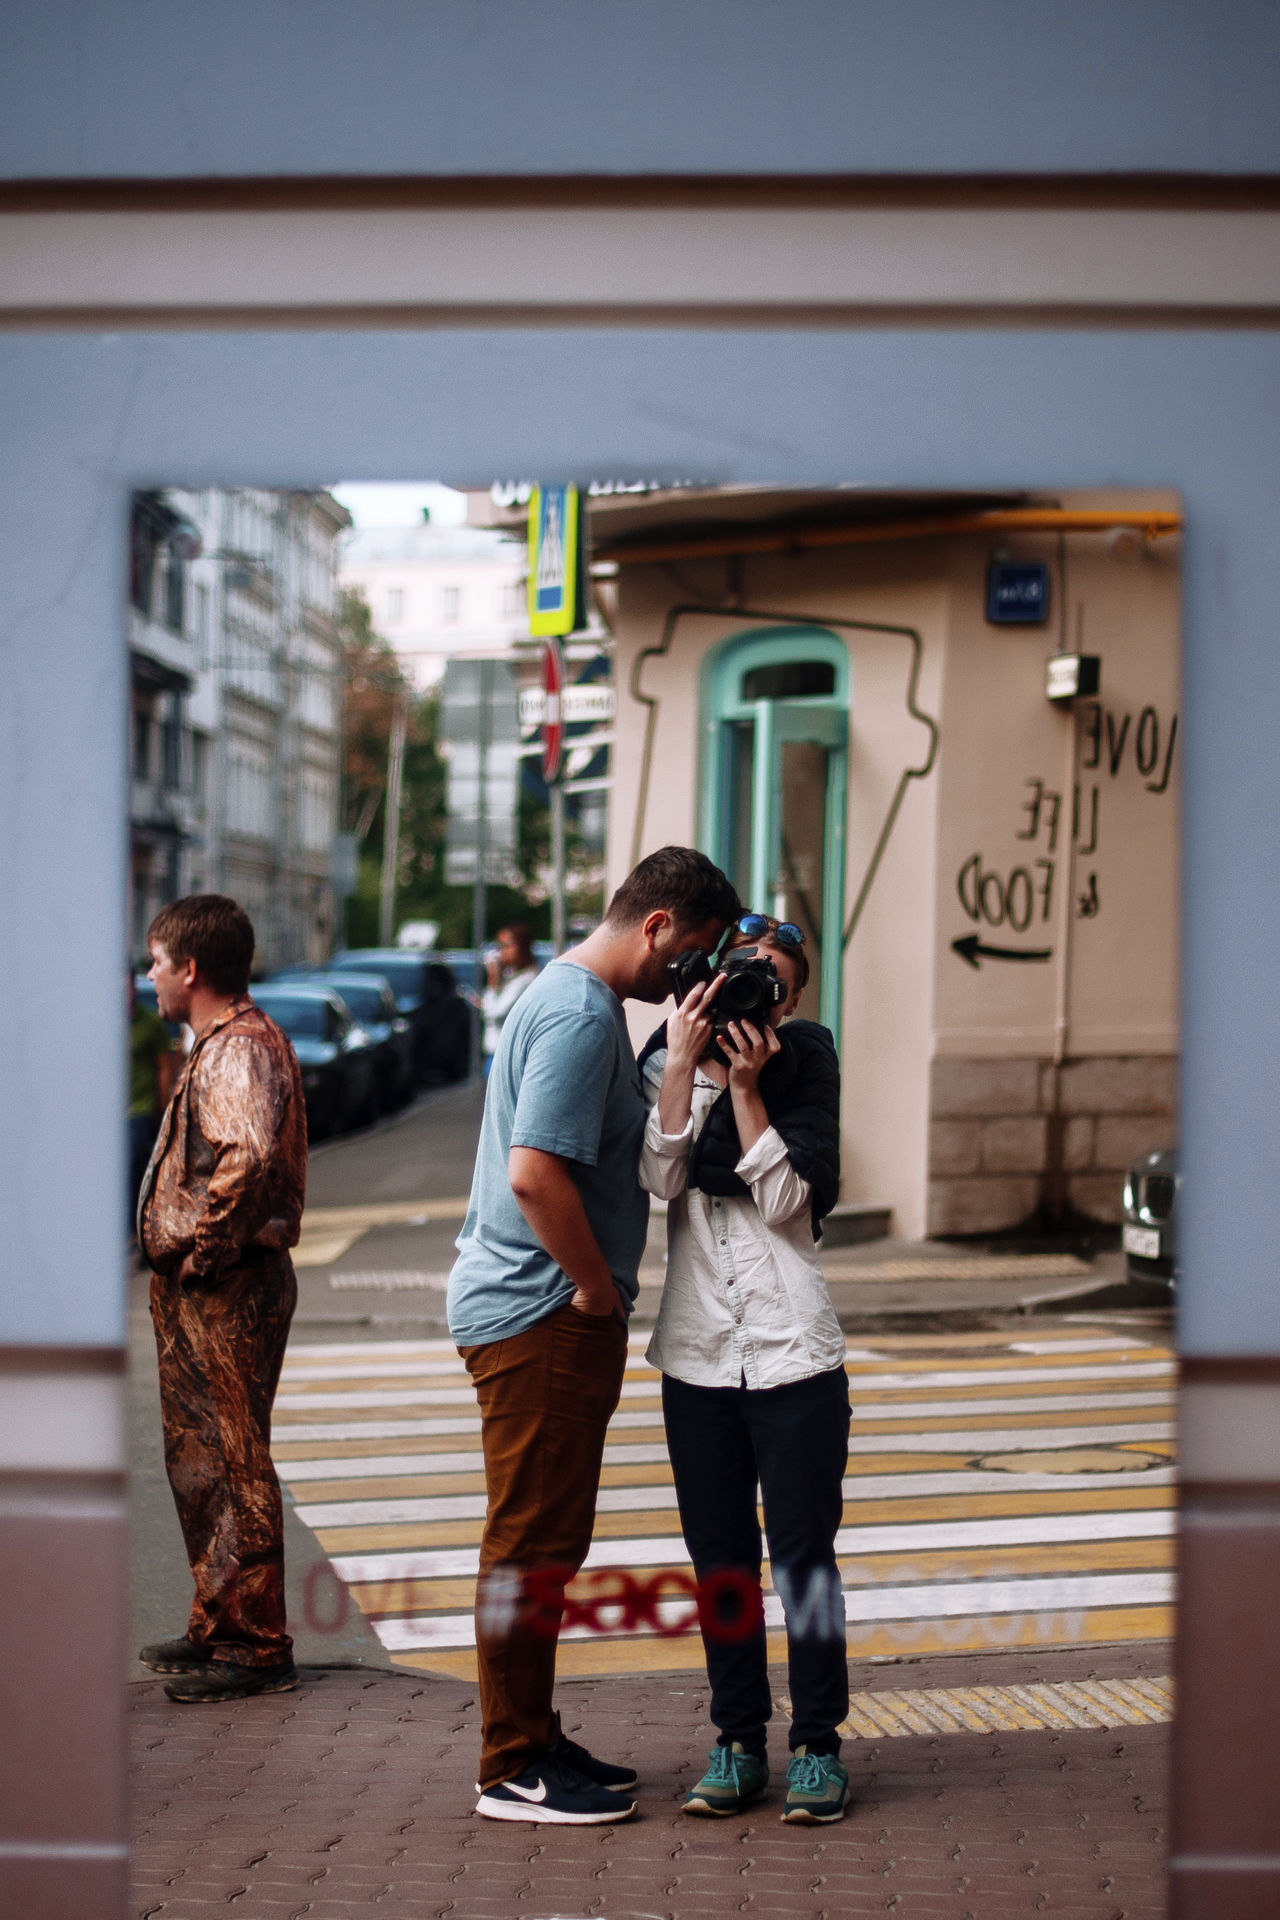 City Street City Life People Building Exterior Outdoors Architecture Day Memories Men Full Length Women Road